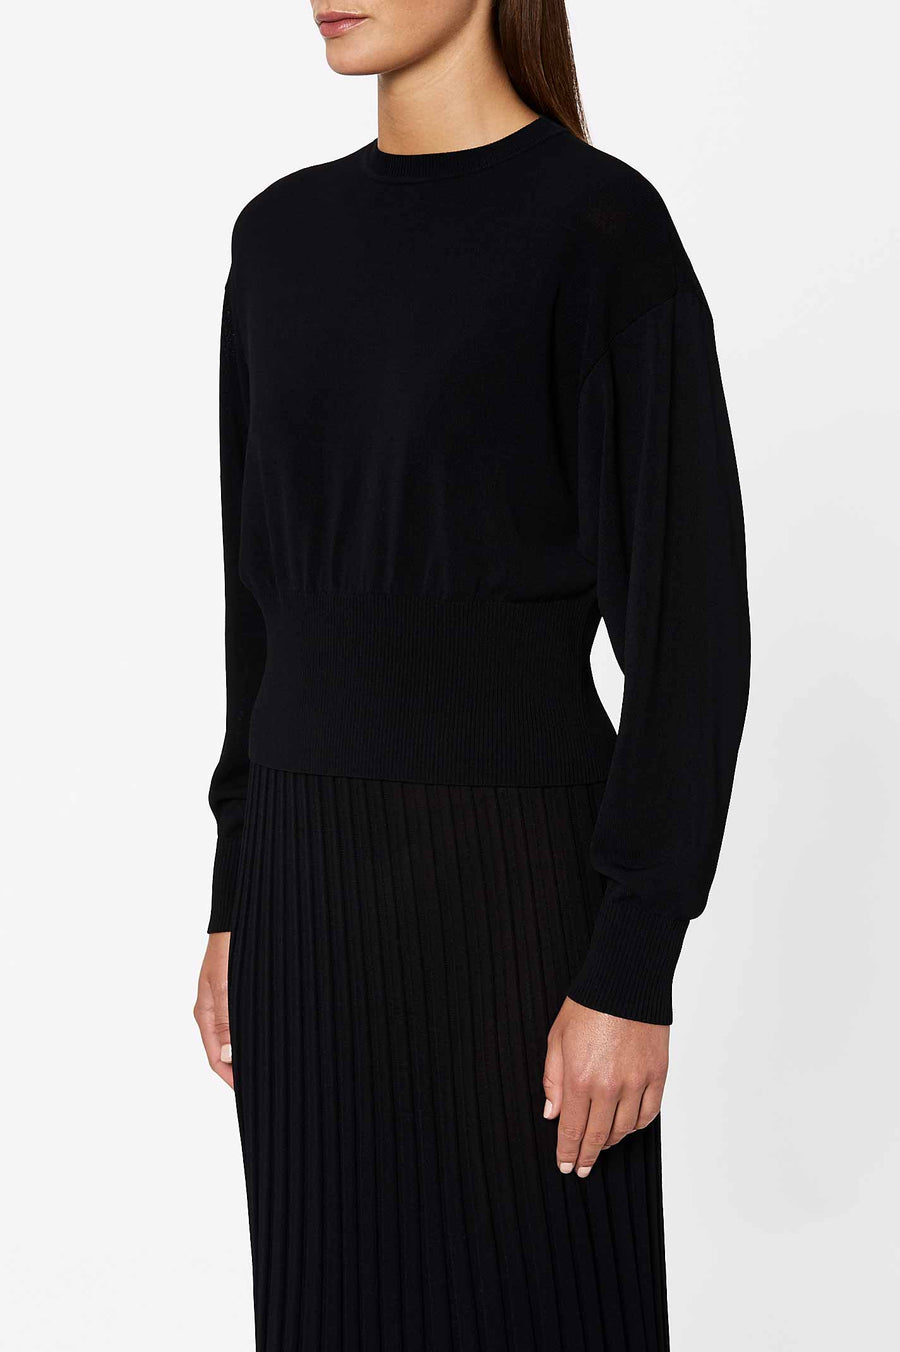 PLEATED RIB COCOON SLV SWTR 14 BLACK